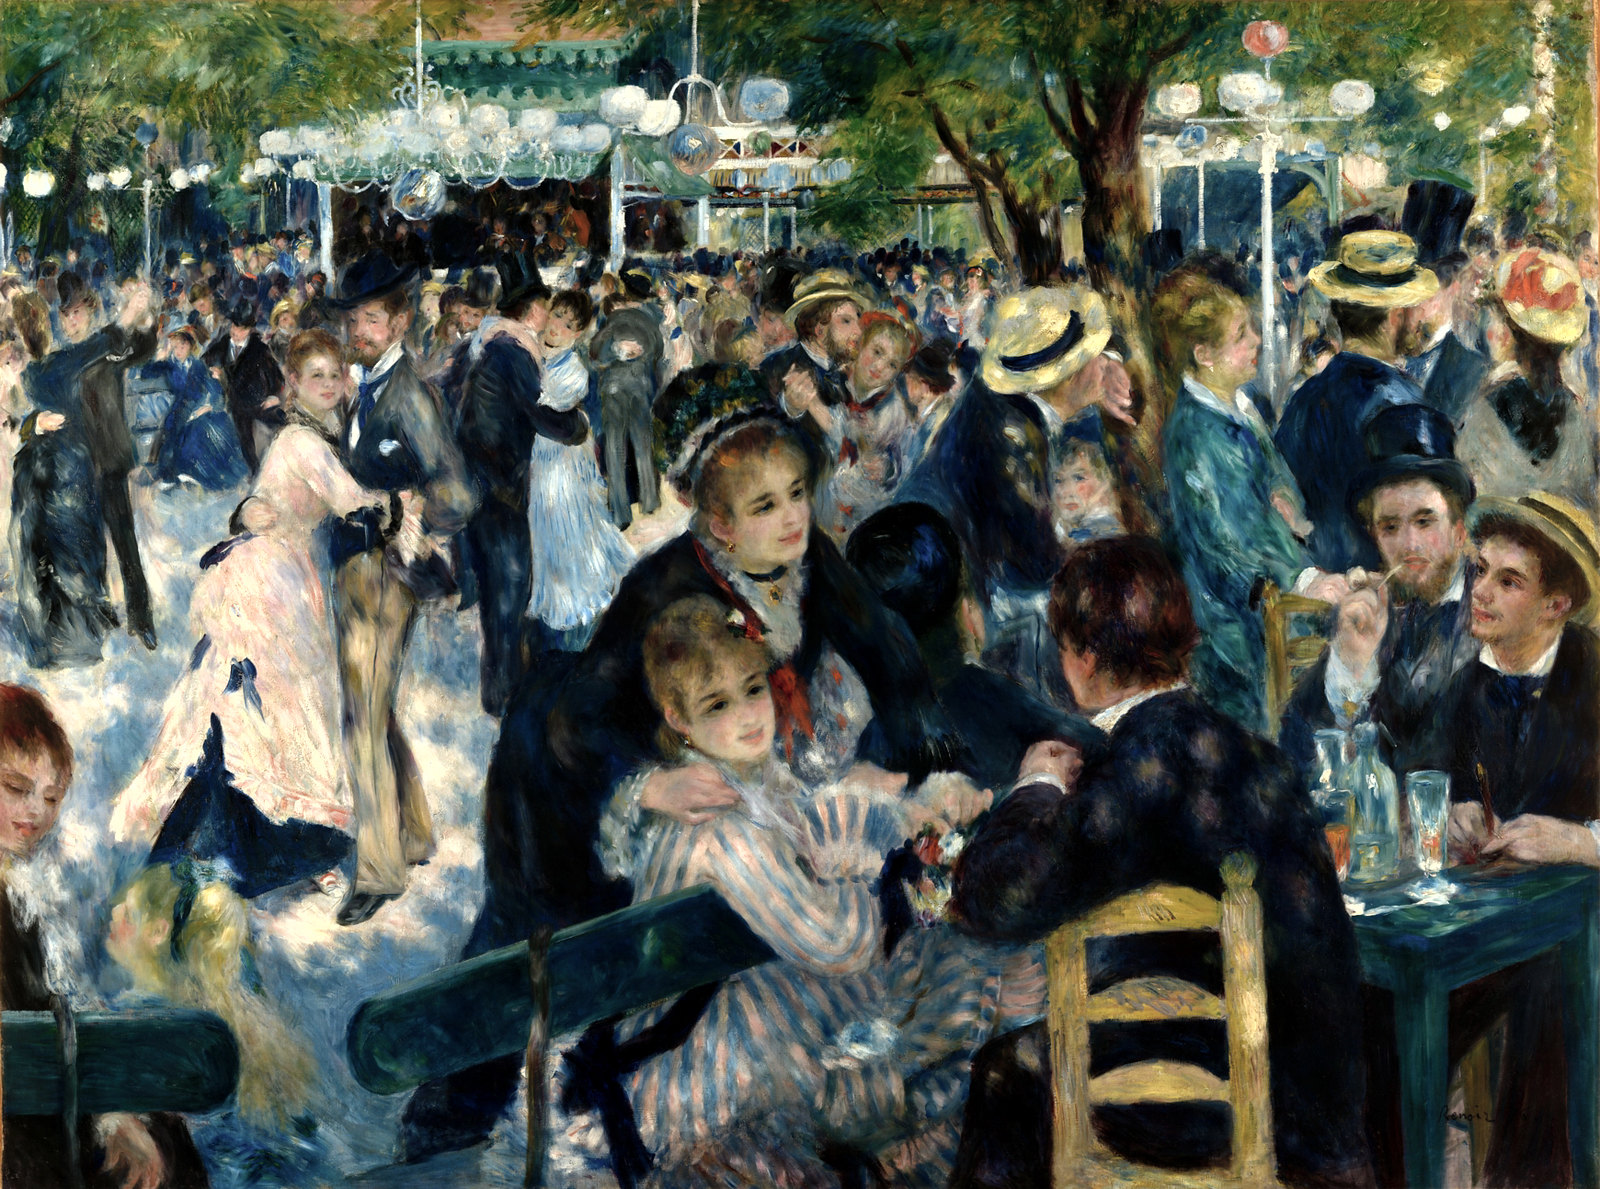 Dance at Le Moulin de la Galette by Pierre-Auguste Renoir, 1876